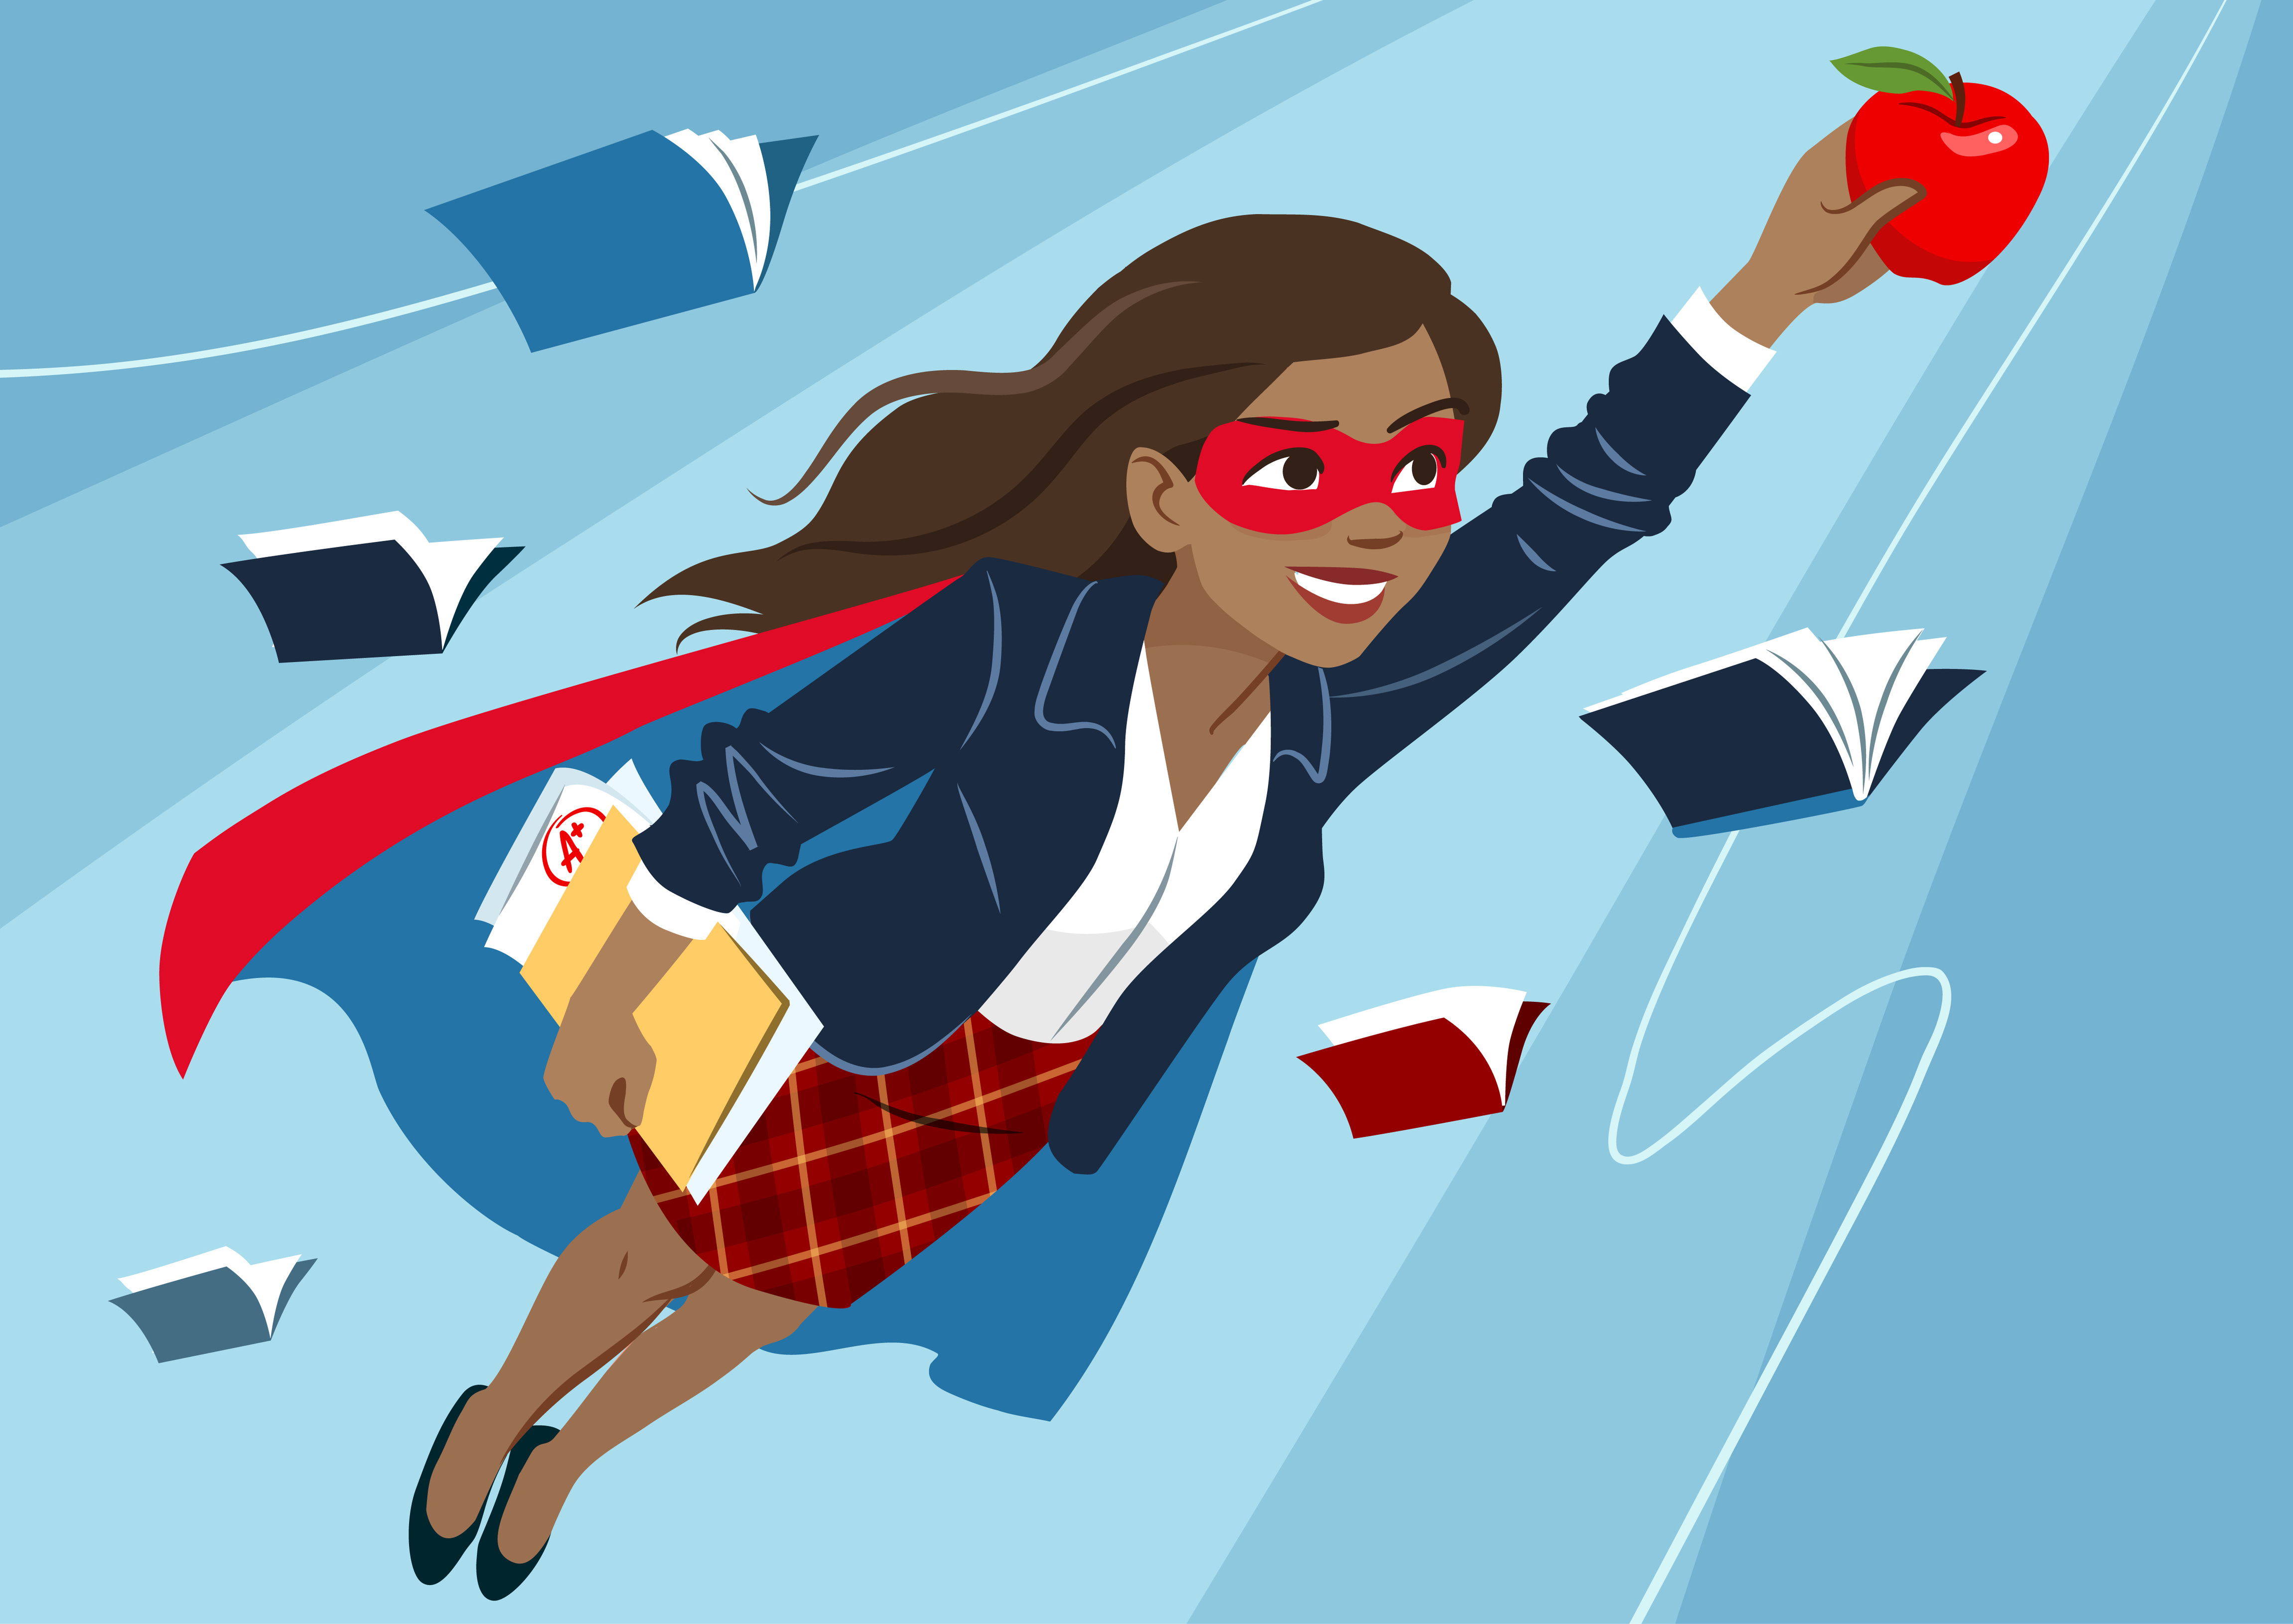 Young woman in cape and mask flying through air in superhero pose, looking confident and happy, holding an apple and folder with papers, open books around.